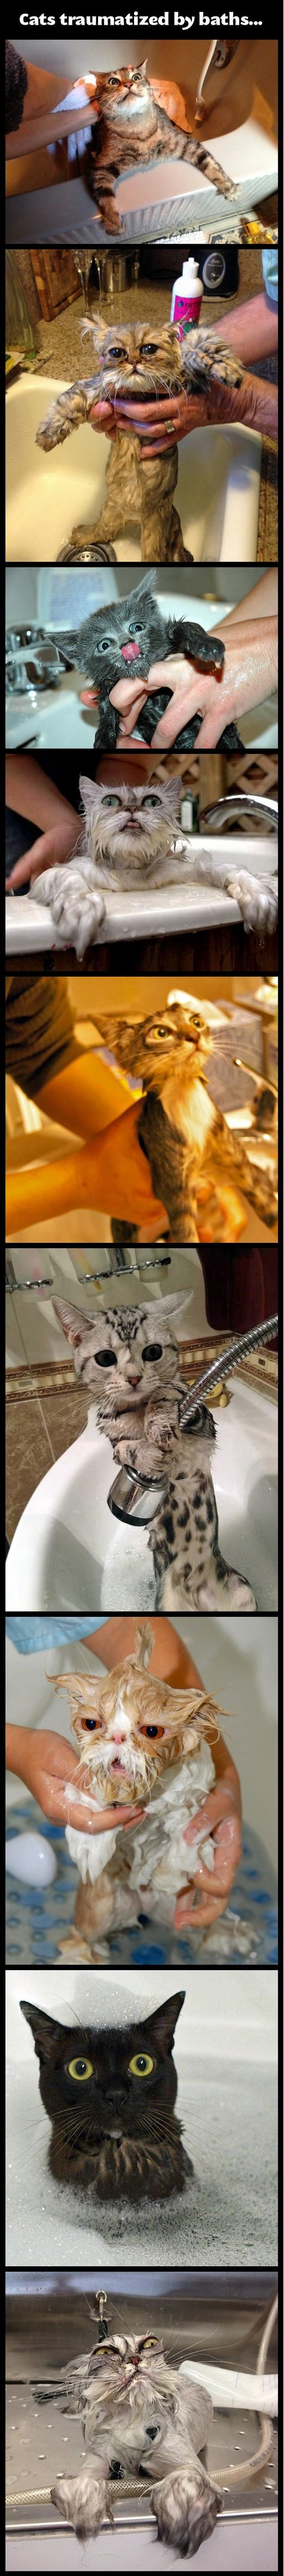 funny-pictures-cats-taking-bath